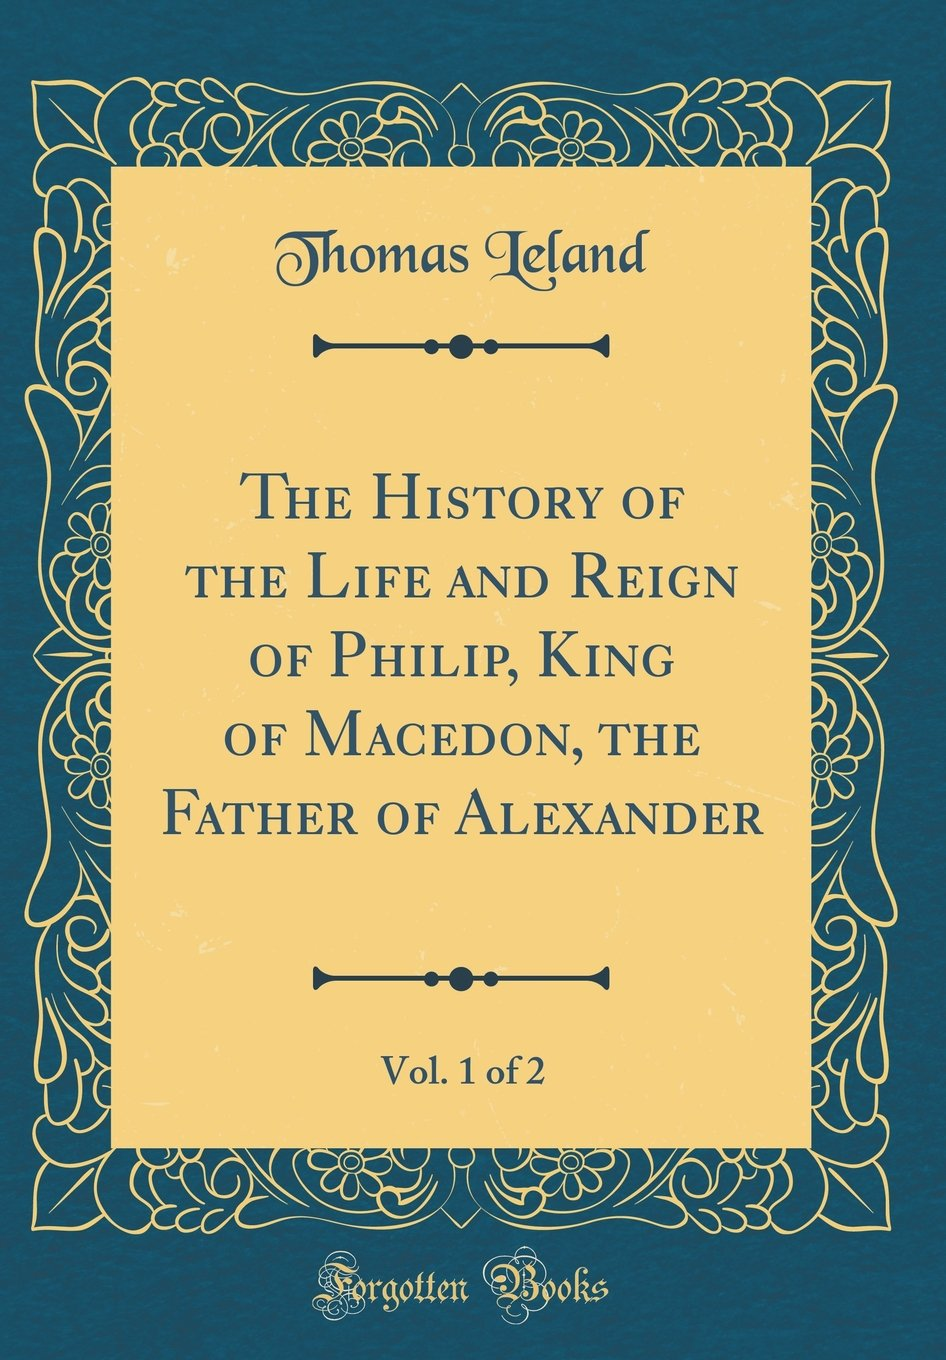 The History of the Life and Reign of Philip, King of Macedon, the Father of Alexander, Vol. 1 of 2 (Classic Reprint)